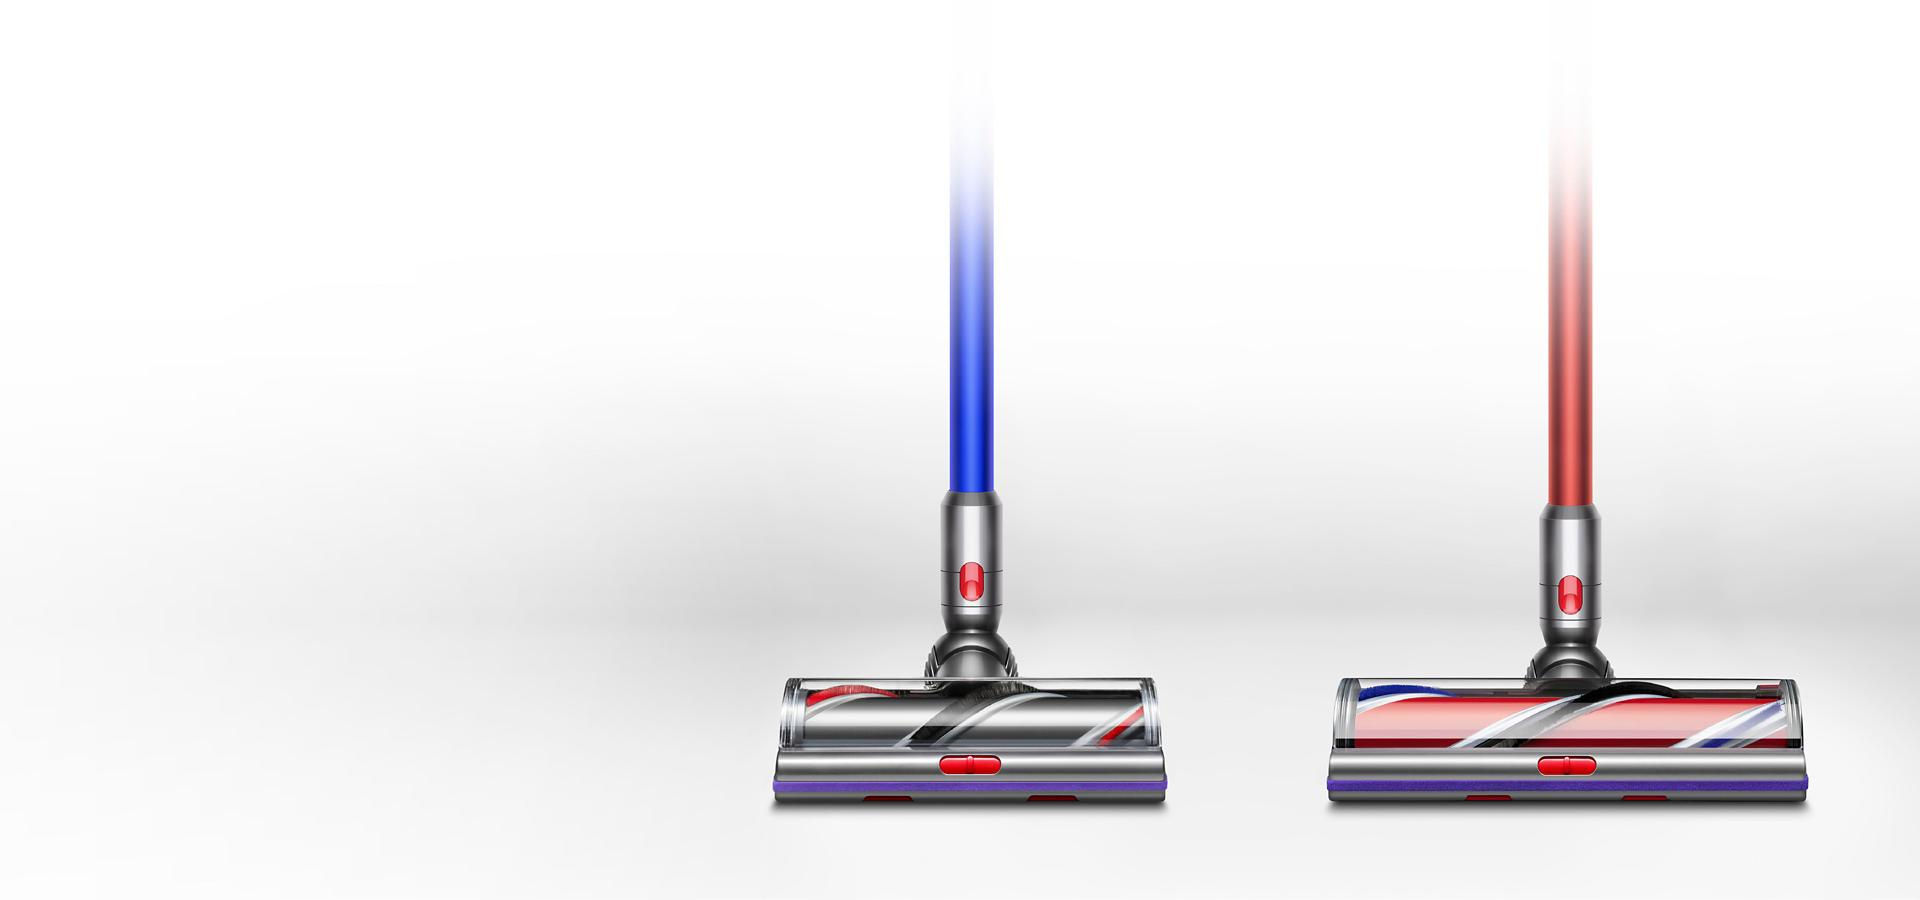 Image of Dyson V11 Absolute Extra next to Dyson V11 Outsize showing differences in cleaner head size